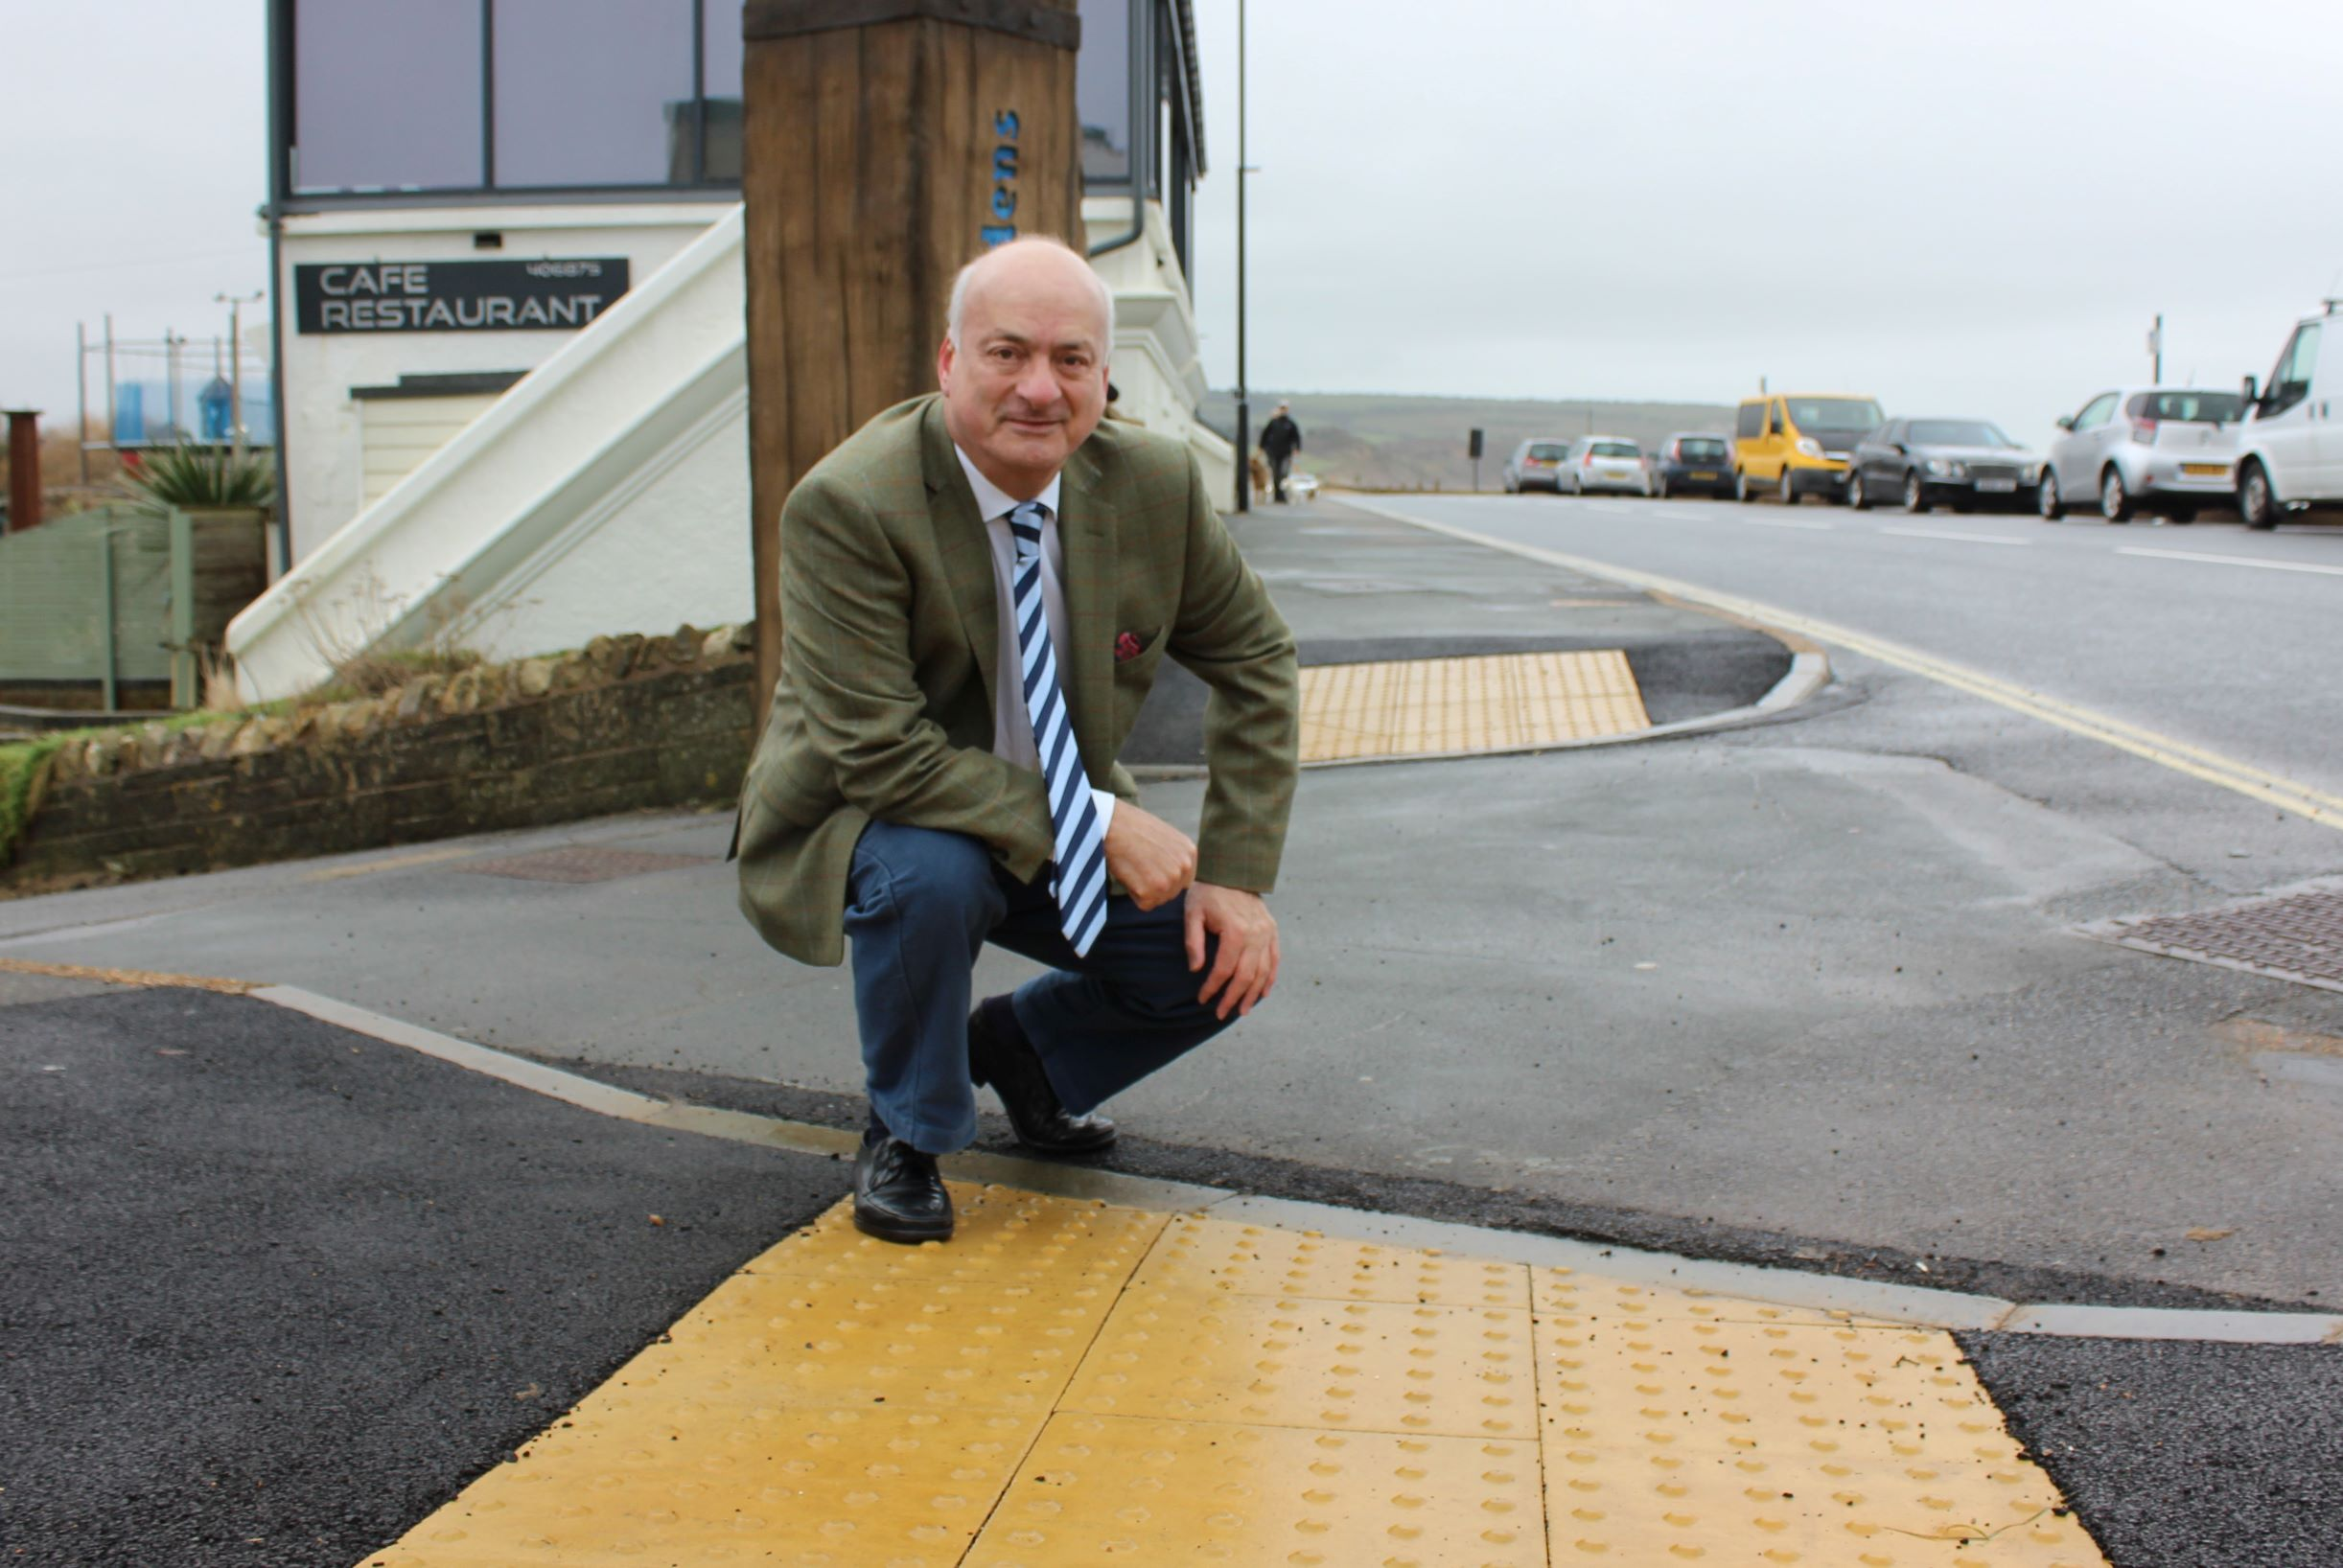 Photo shows a person (councillor Ian Ward) crouched down beside a tactile dropped kerb near the edge of the road